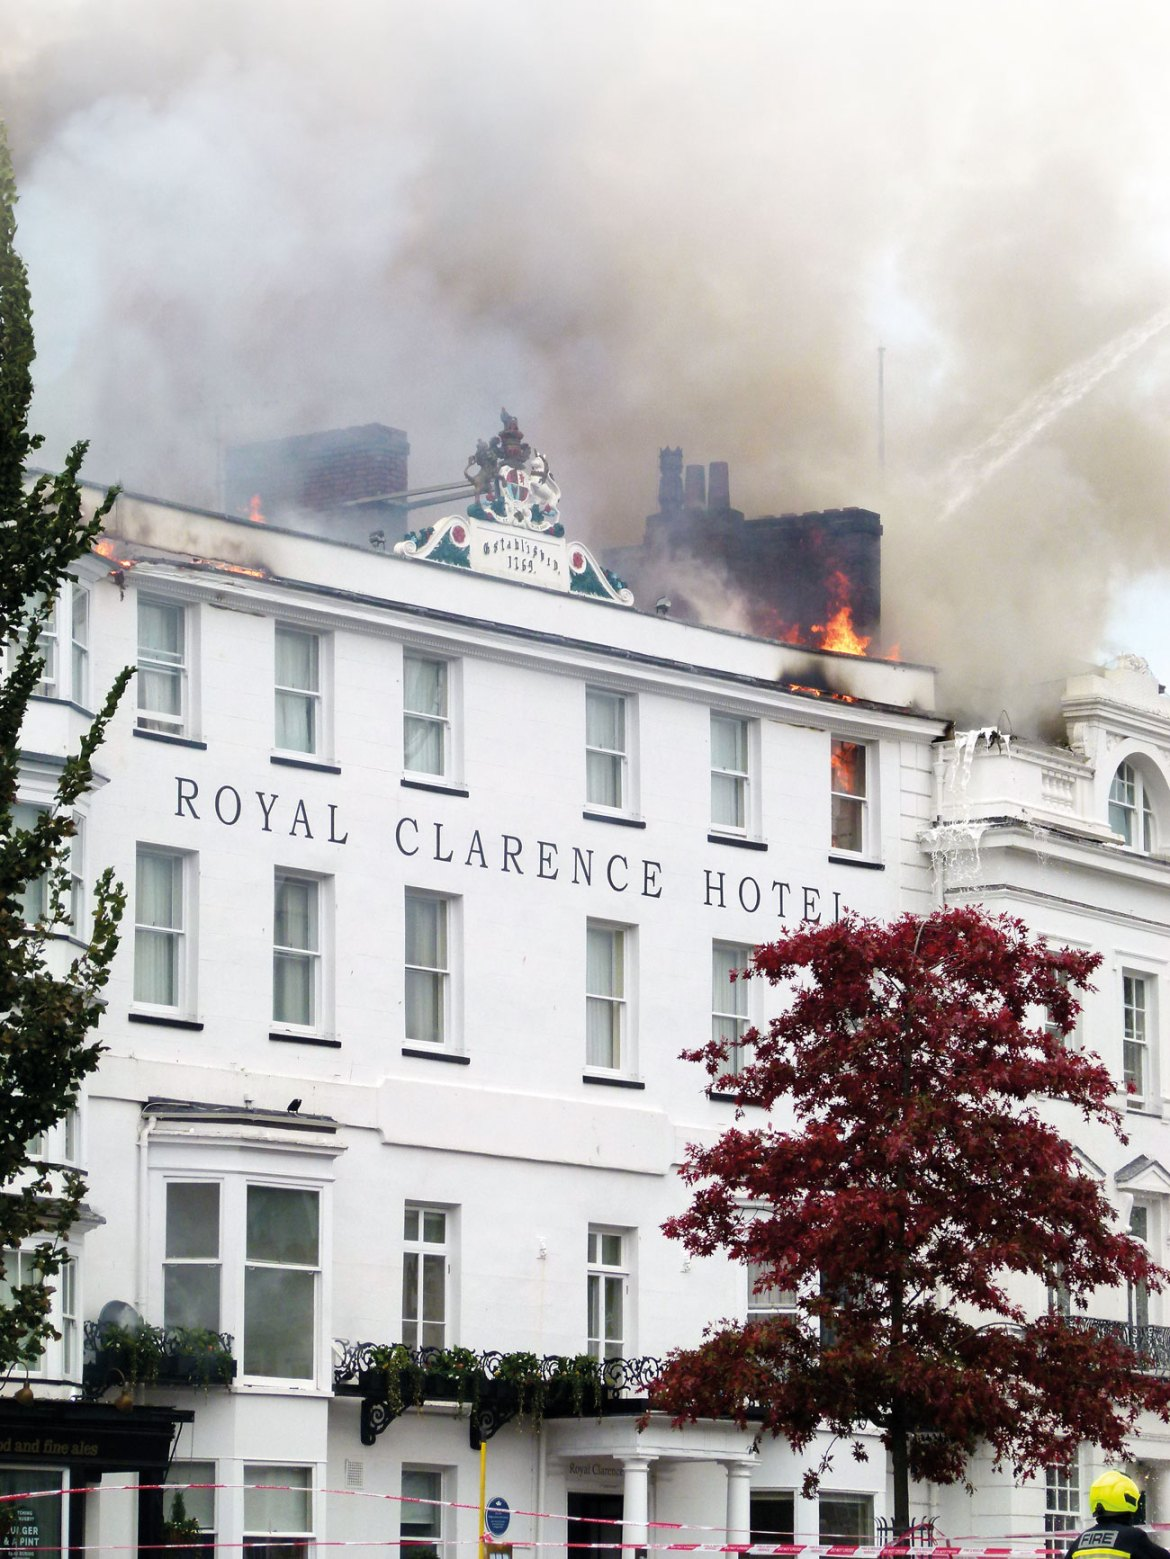 Fire spread at roof level on the Royal Clarence Hotel.